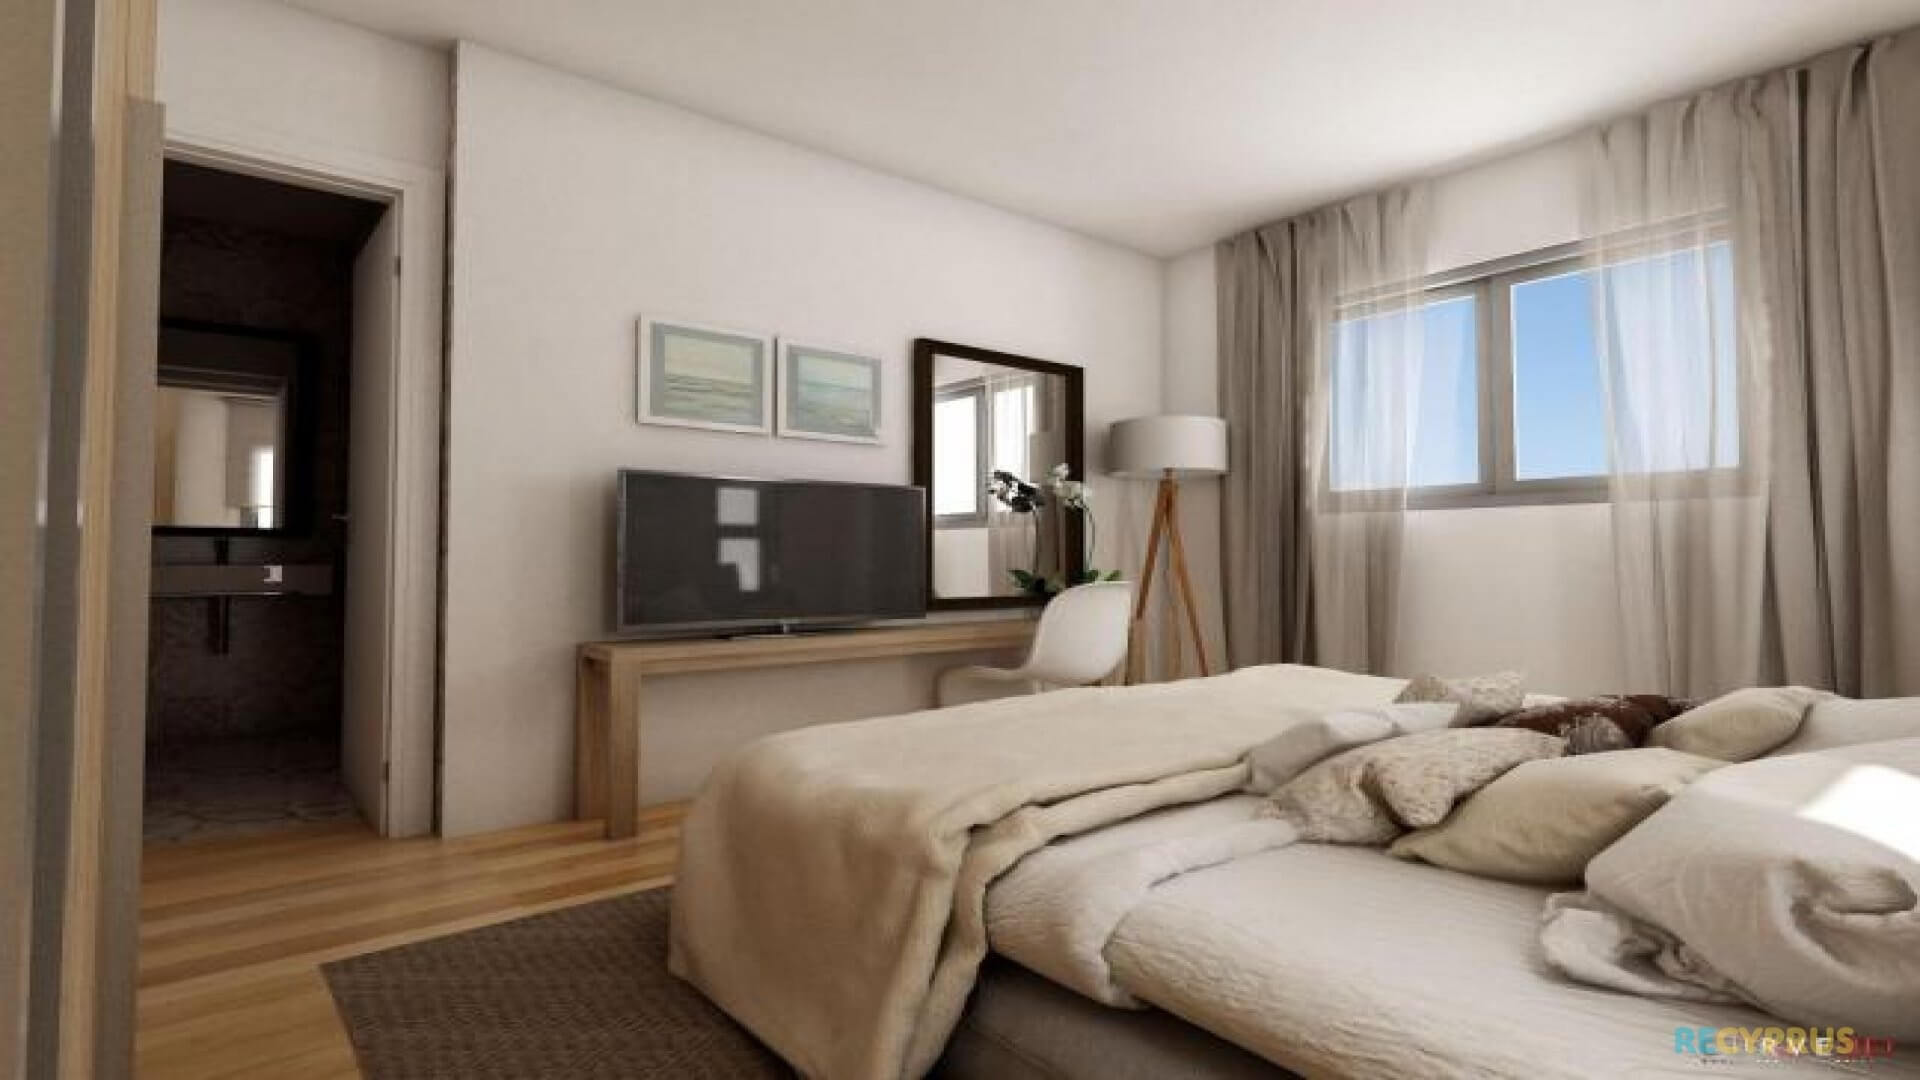 Apartment for sale City Center Larnaca Cyprus 5 3584